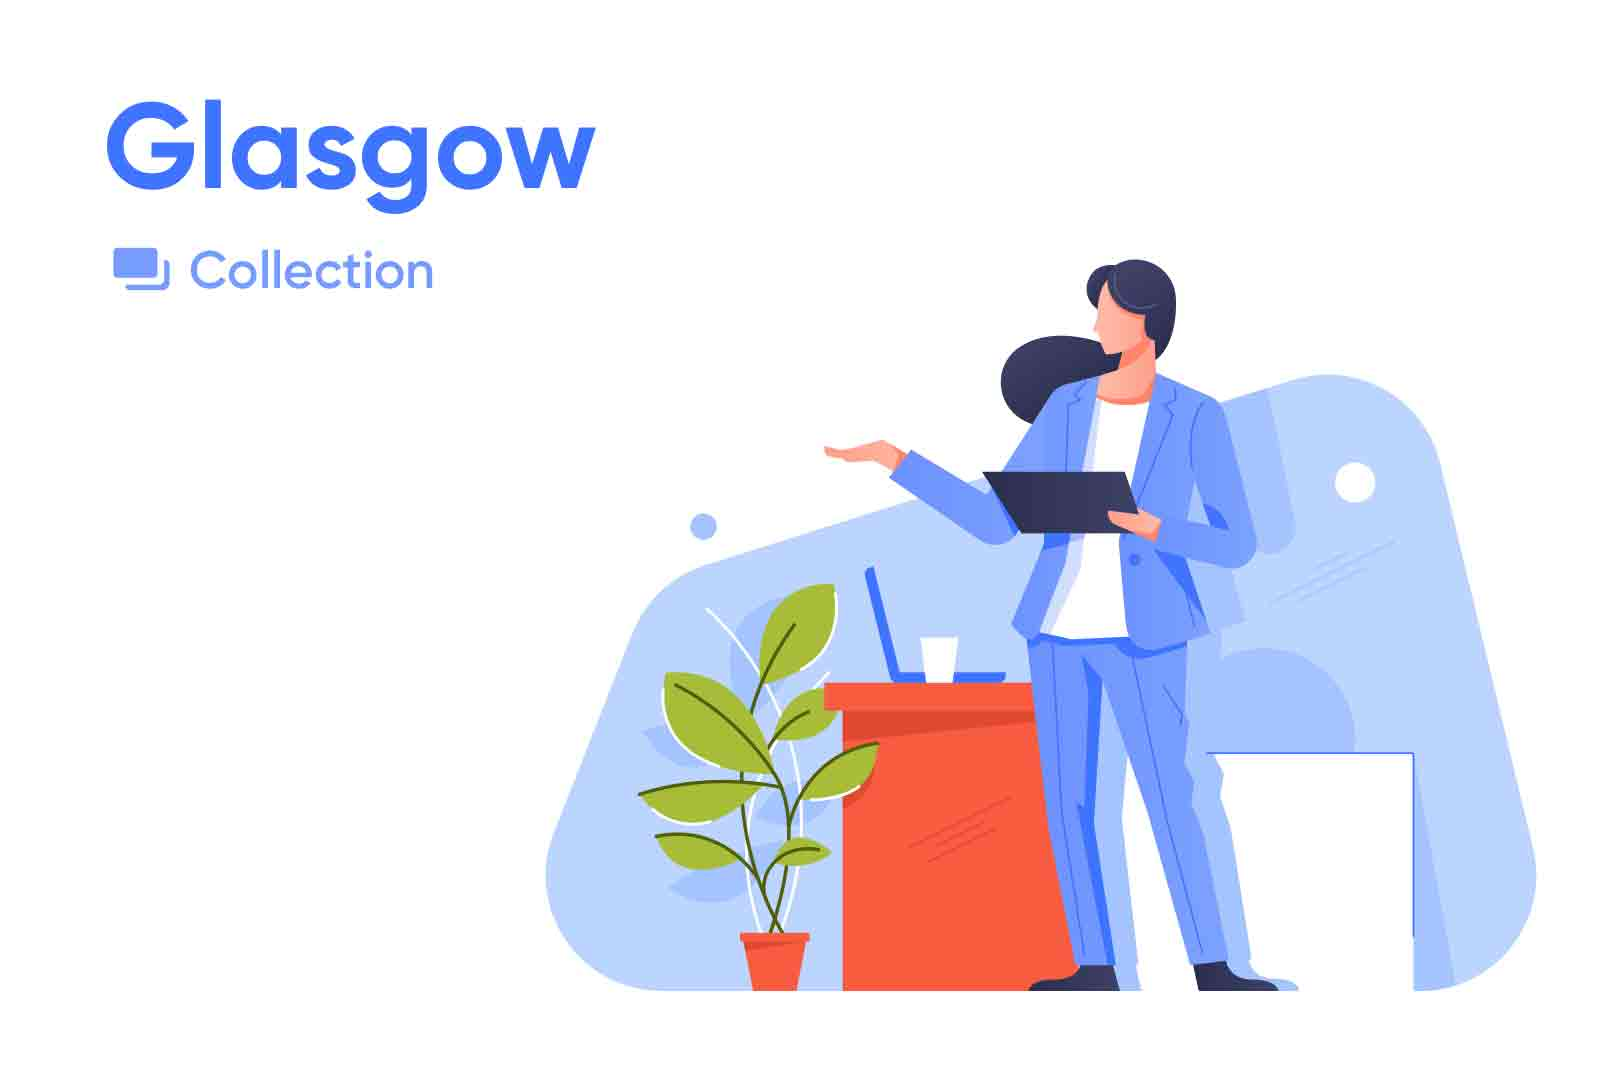 Glasgow vector illustrations series